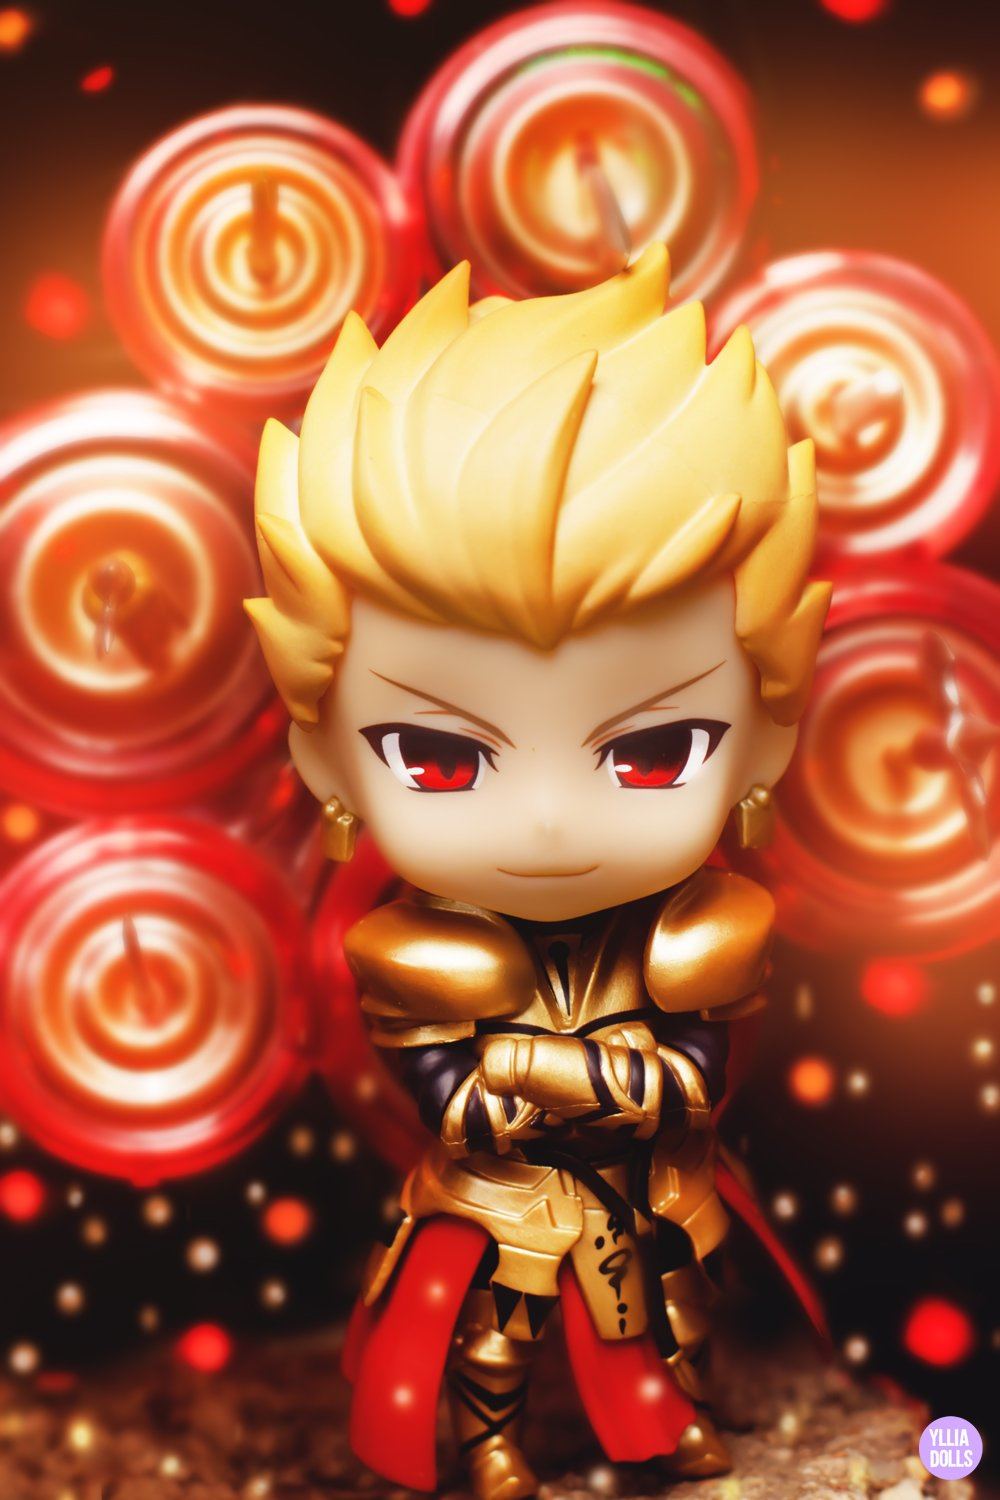 nendoroid type_moon good_smile_company fate/stay_night nendoron gilgamesh knead_k@z